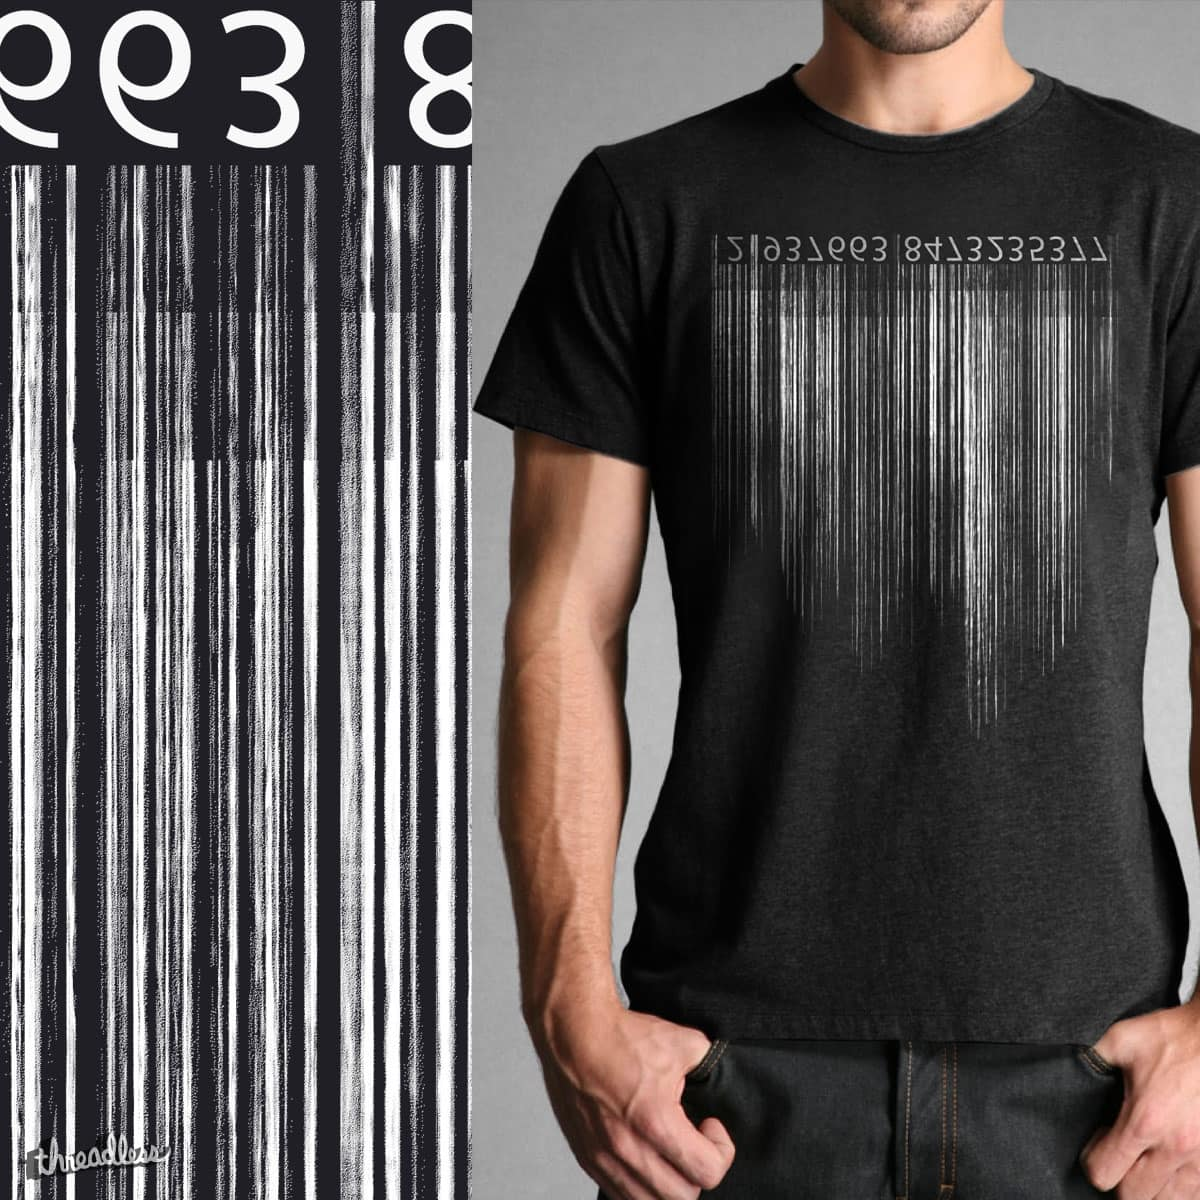 Distressed Barcode by yeoul4 on Threadless